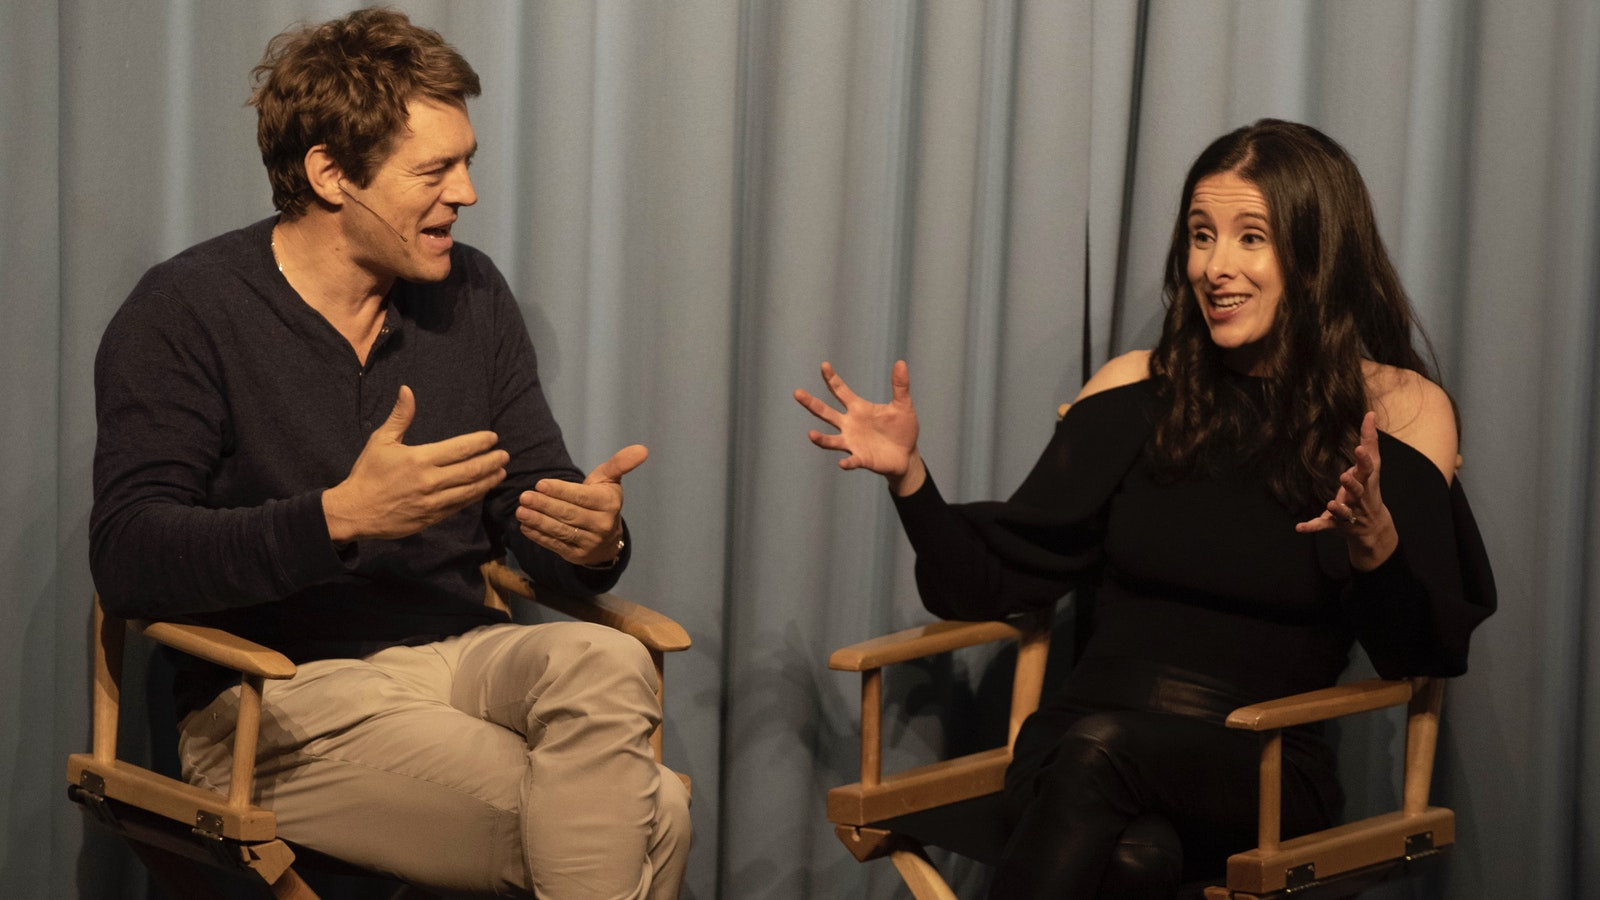 Hollywood producer Jason Blum with The Information's Jessica Lessin on Tuesday night. Photo by Erin Beach.